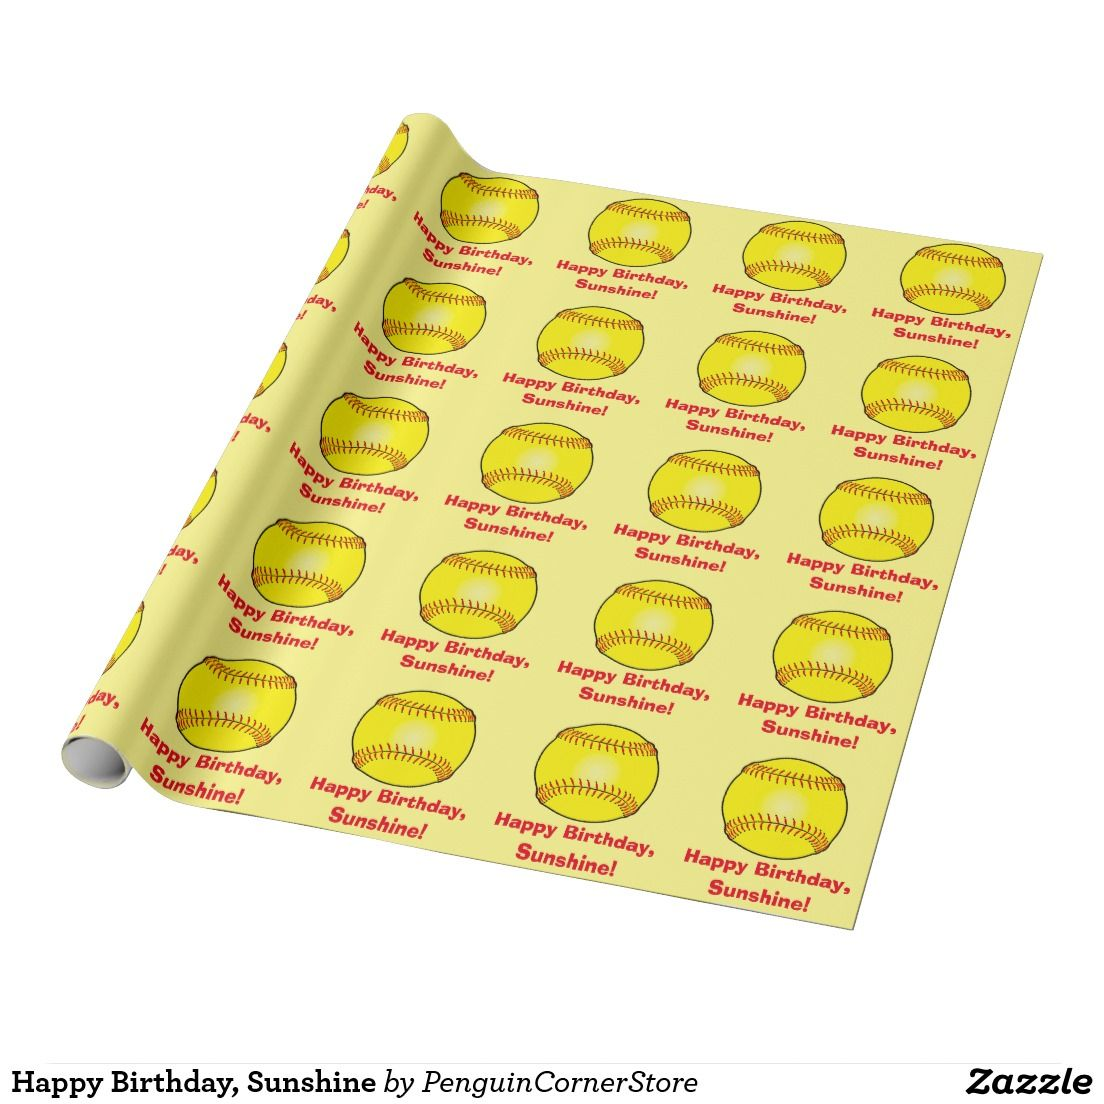 Happy Birthday, Sunshine Wrapping Paper